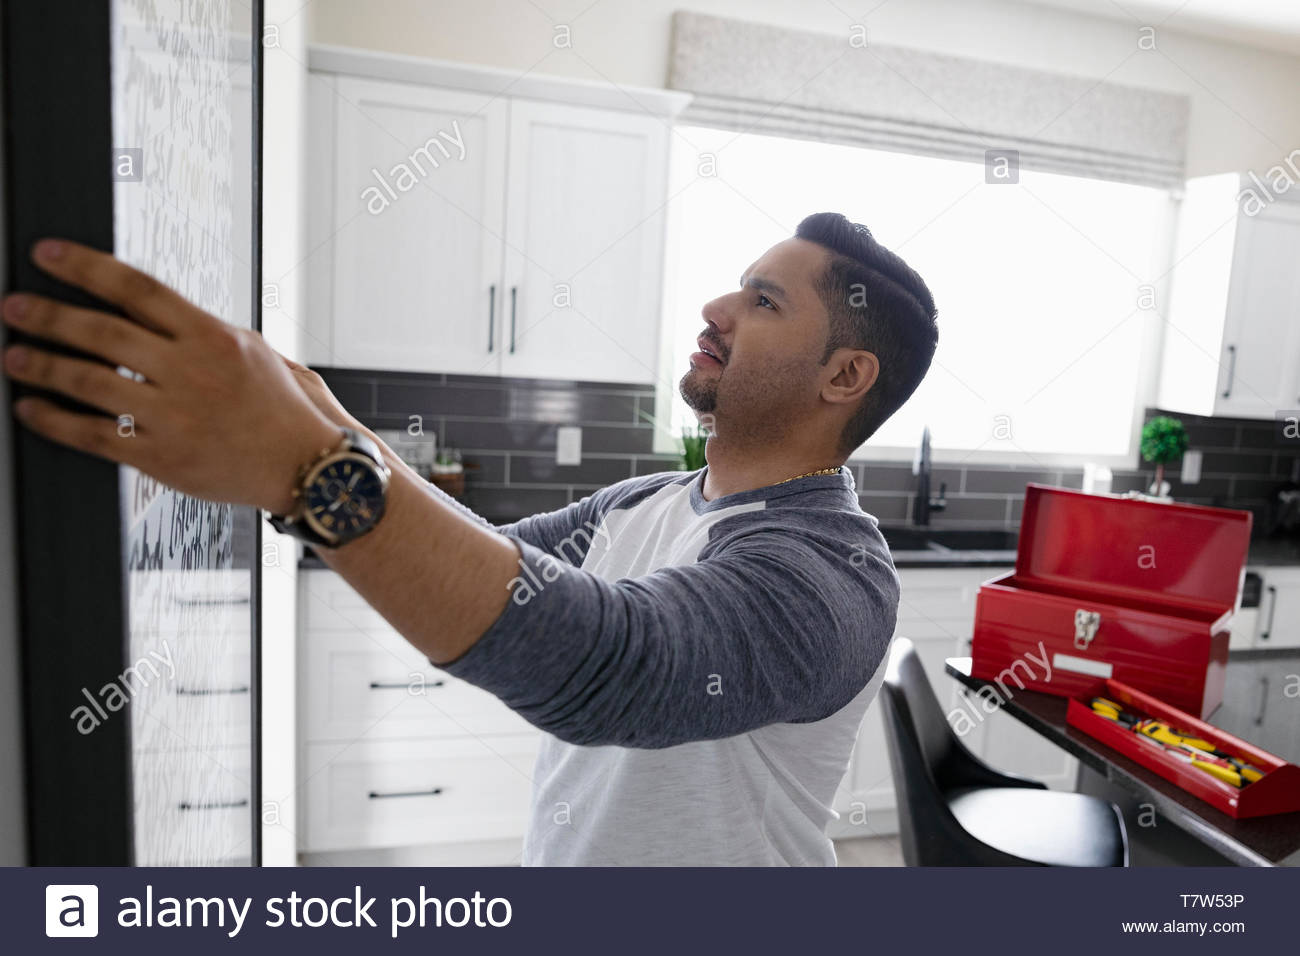 Man hanging picture frame on kitchen wall - Stock Image